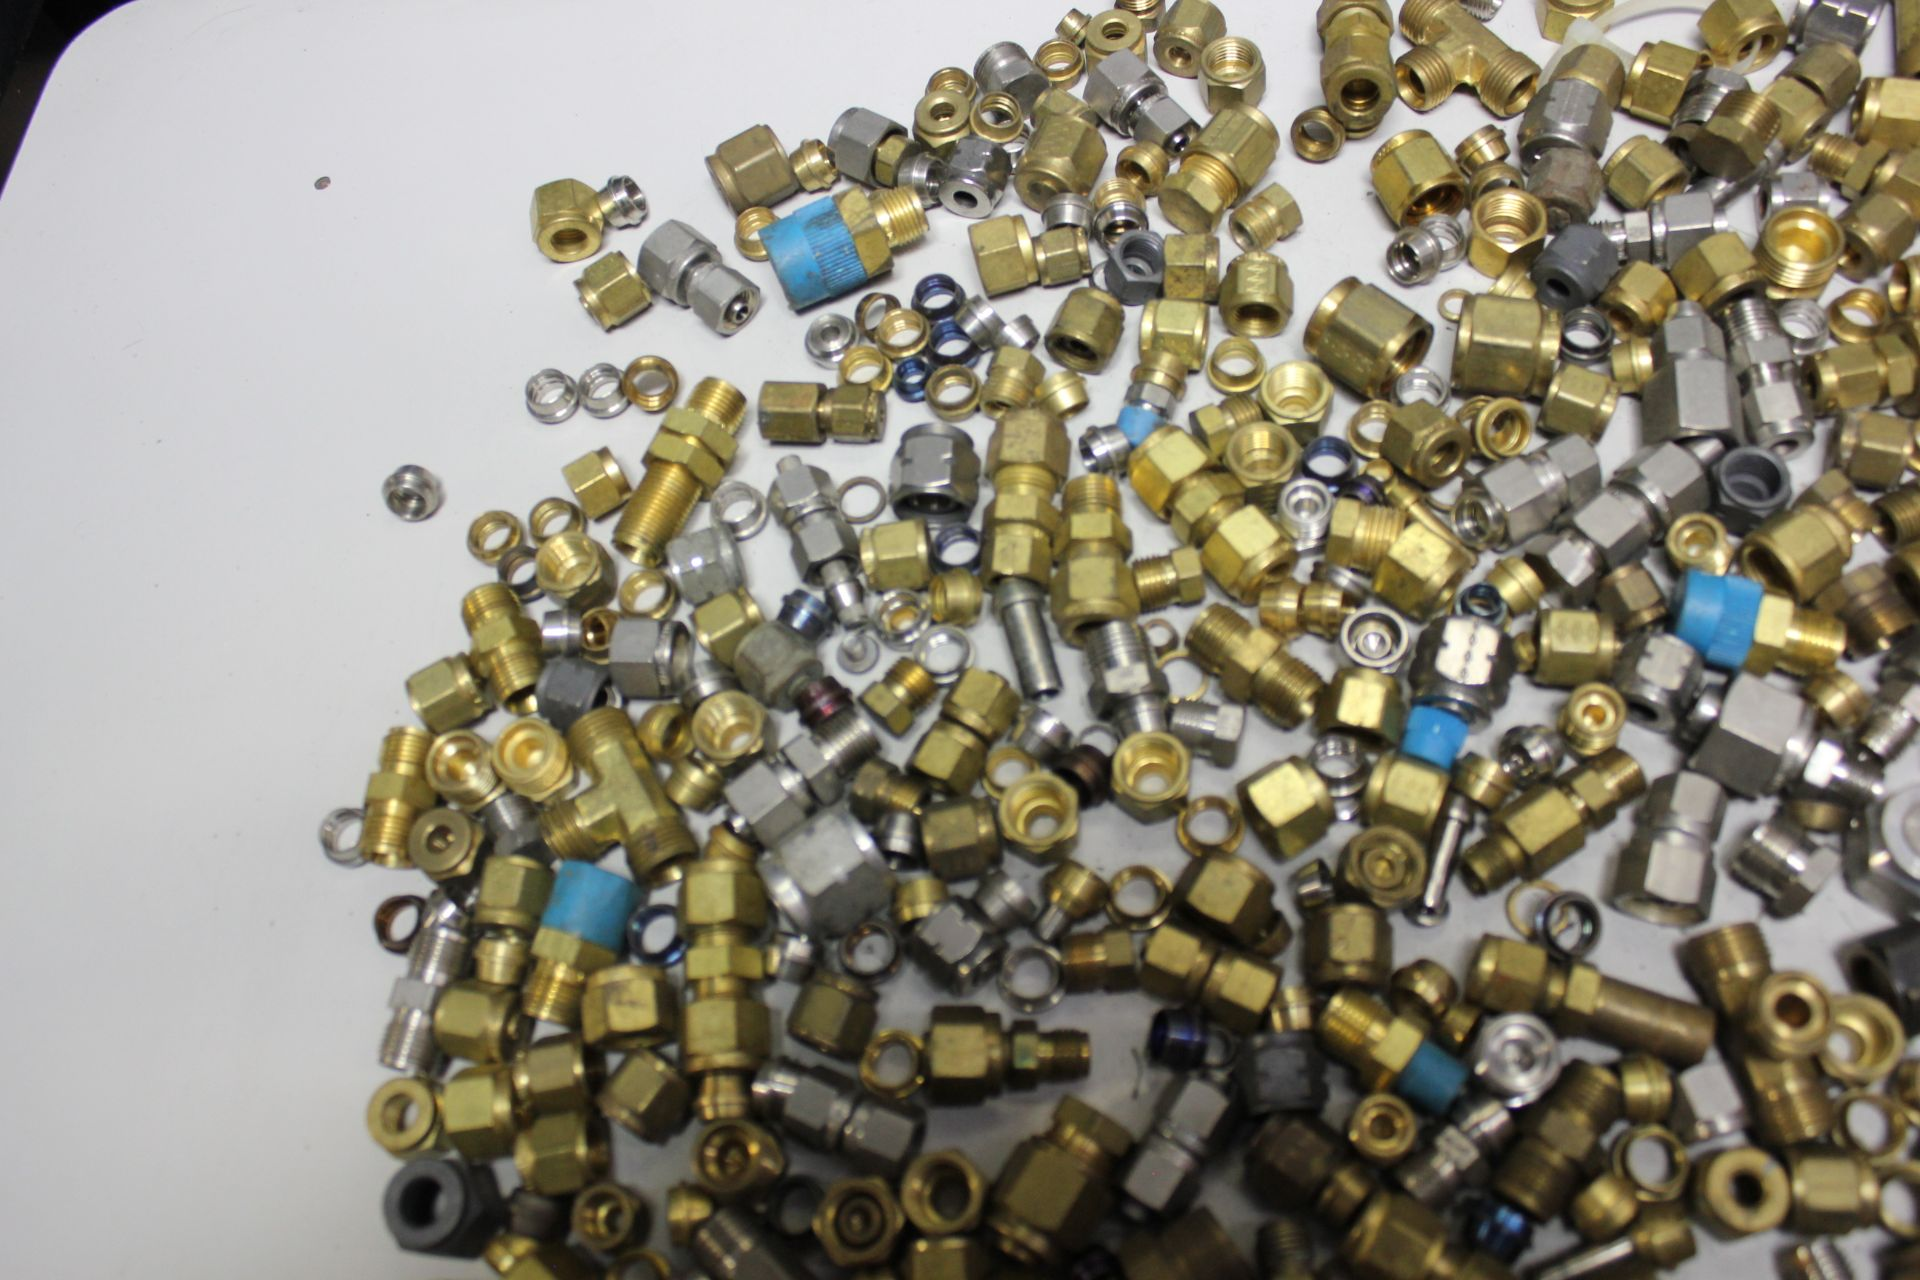 LOT OF COMPRESSION FITTINGS - SWAGELOK, CAJON, ETC - Image 5 of 8